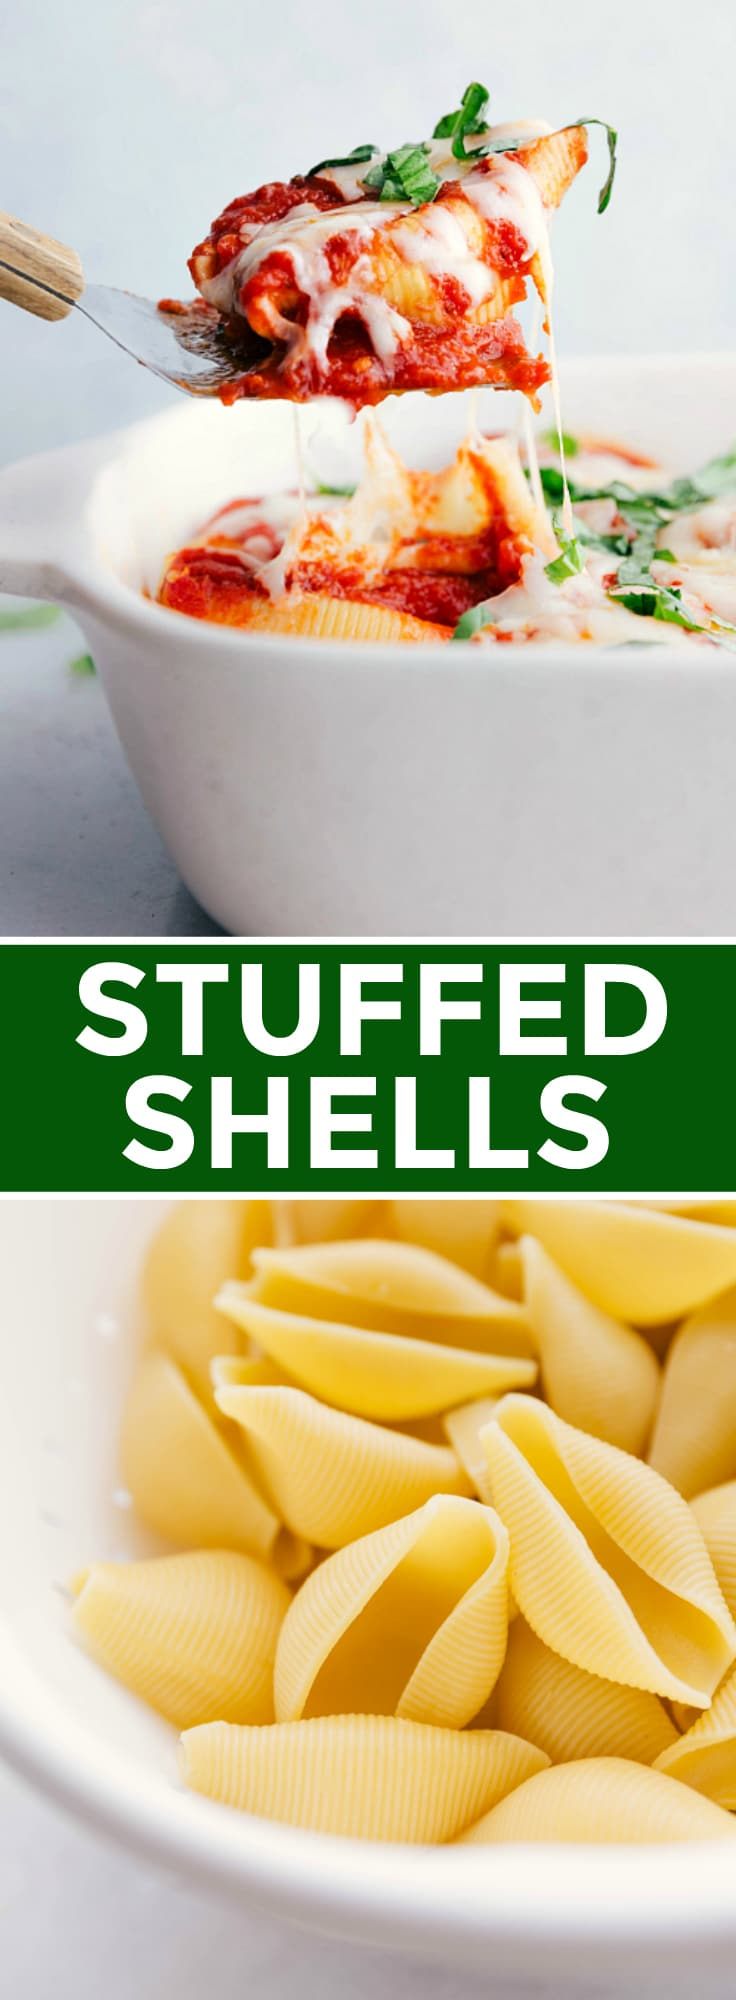 These classic stuffed shells are made with cooked pasta shells, a cheesy ricotta filling, a few Italian herbs, and plenty of marinara! This cheesy pasta dish is pure comfort food and couldn't be simpler to make. via chelseasmessyapron.com #stuffed #shells #easy #quick #dinner #vegetarian #pasta #cheese #ricotta #marinara